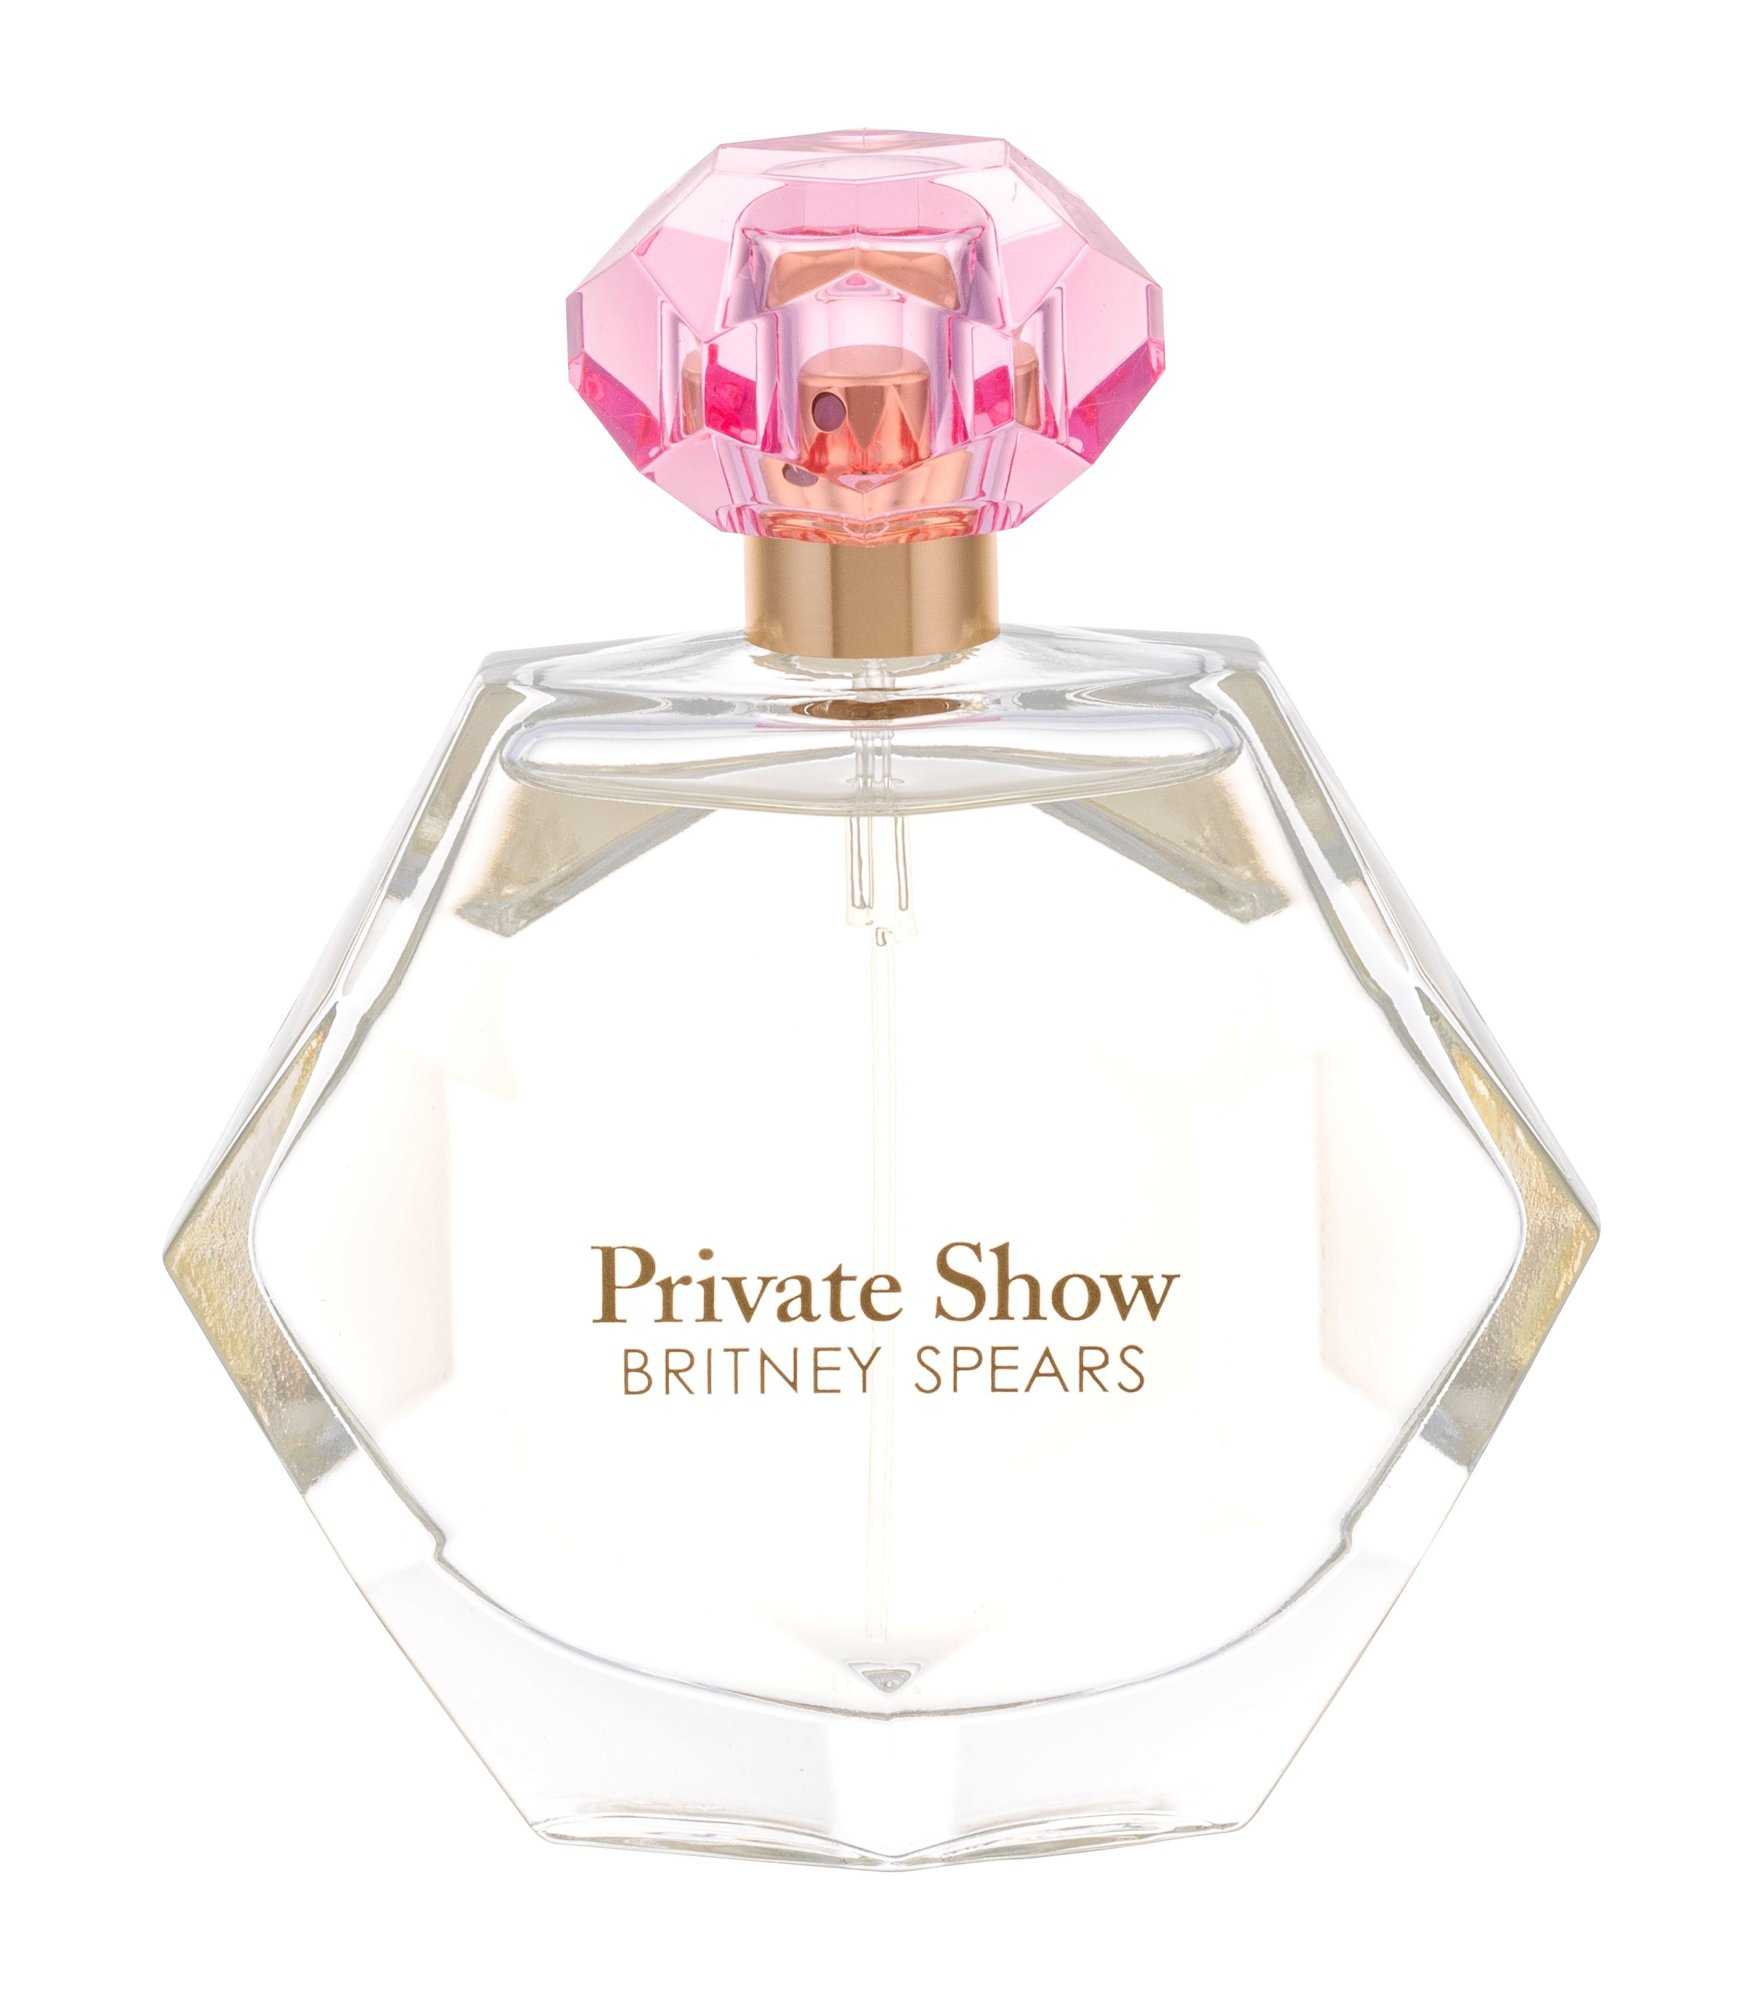 Britney Spears Private Show Eau de Parfum 100ml